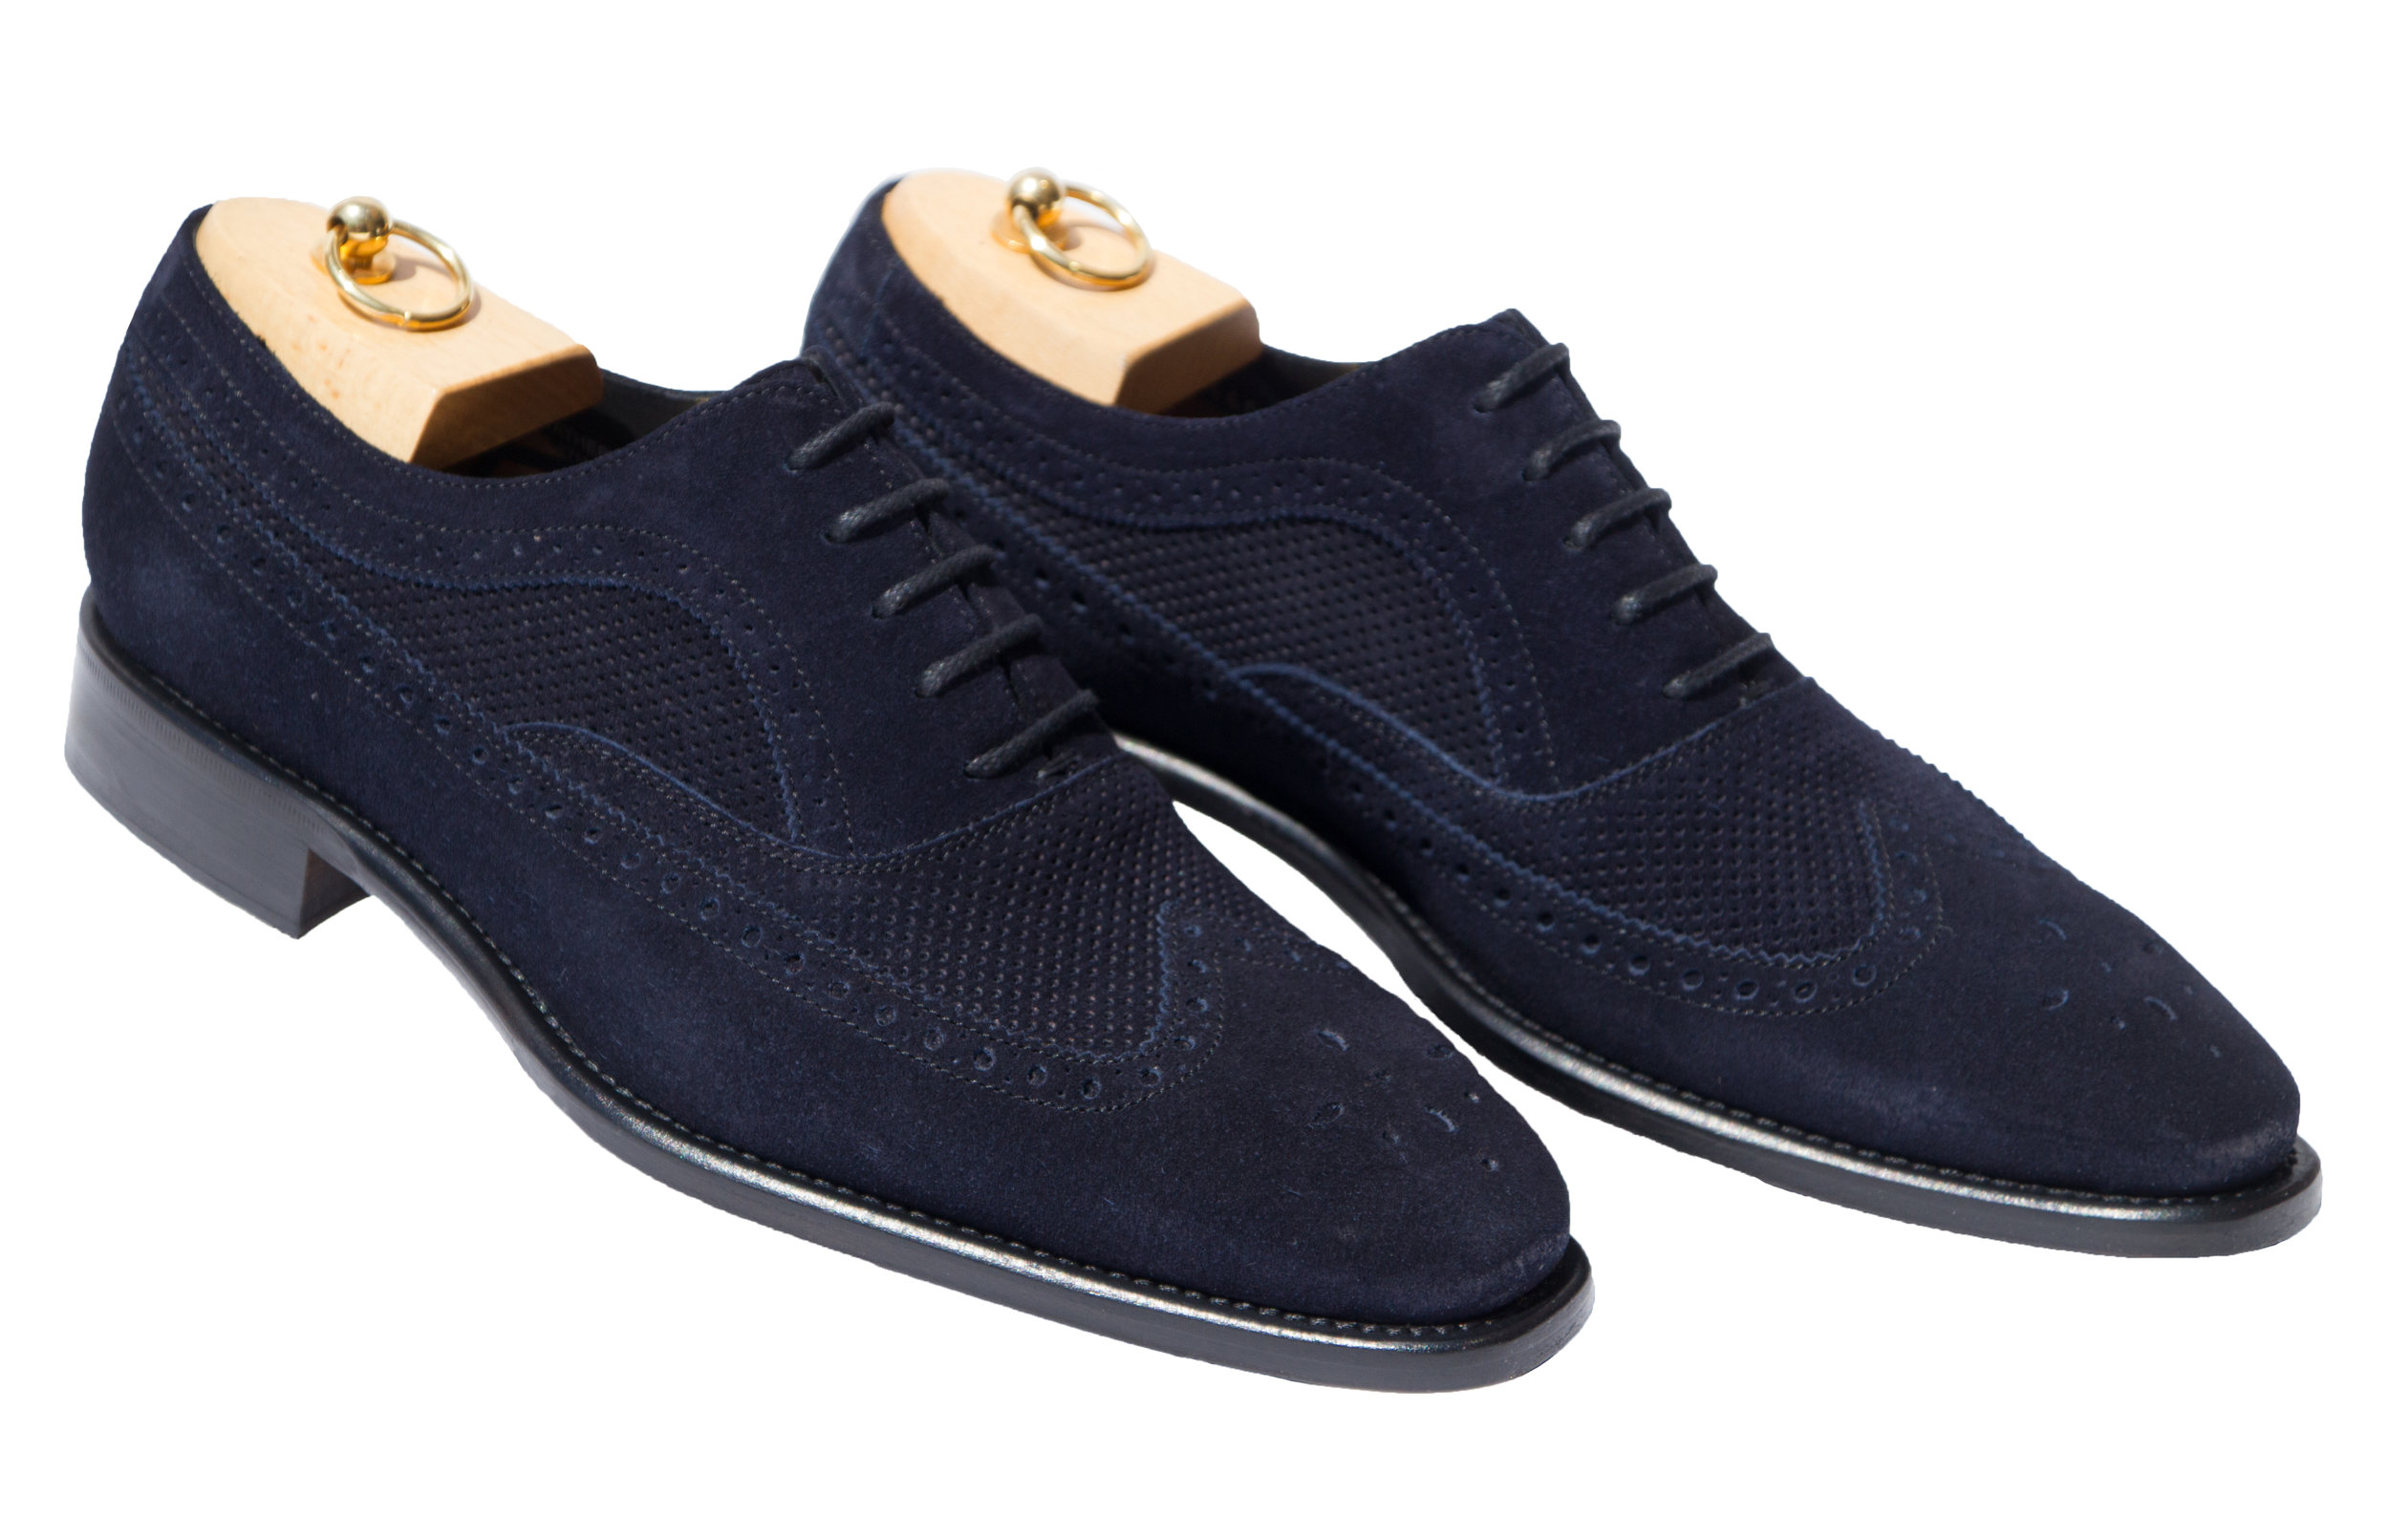 Style # H165: Navy Blue  Velour Suede Wingtip Balmoral  Sizes available: 8 to 16 US, including half sizes